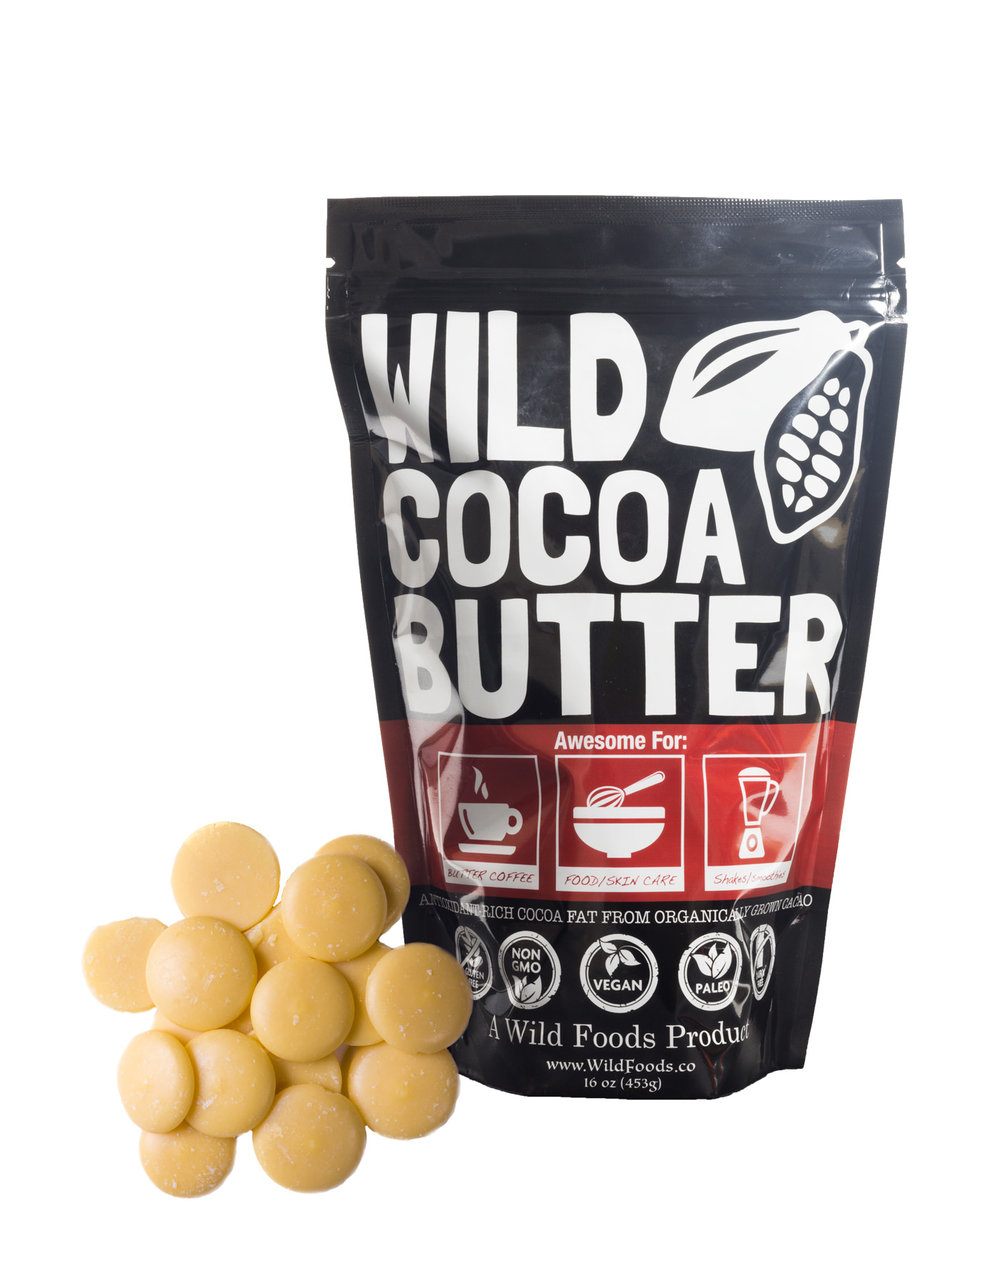 Cocoa Butter 8oz $12.95 - Wild Cocoa Butter Wafers are Raw, Organically grown, Unrefined, Non-Deodorized, Food Grade and Certified Fair Trade Cacao butter from small family farmers!